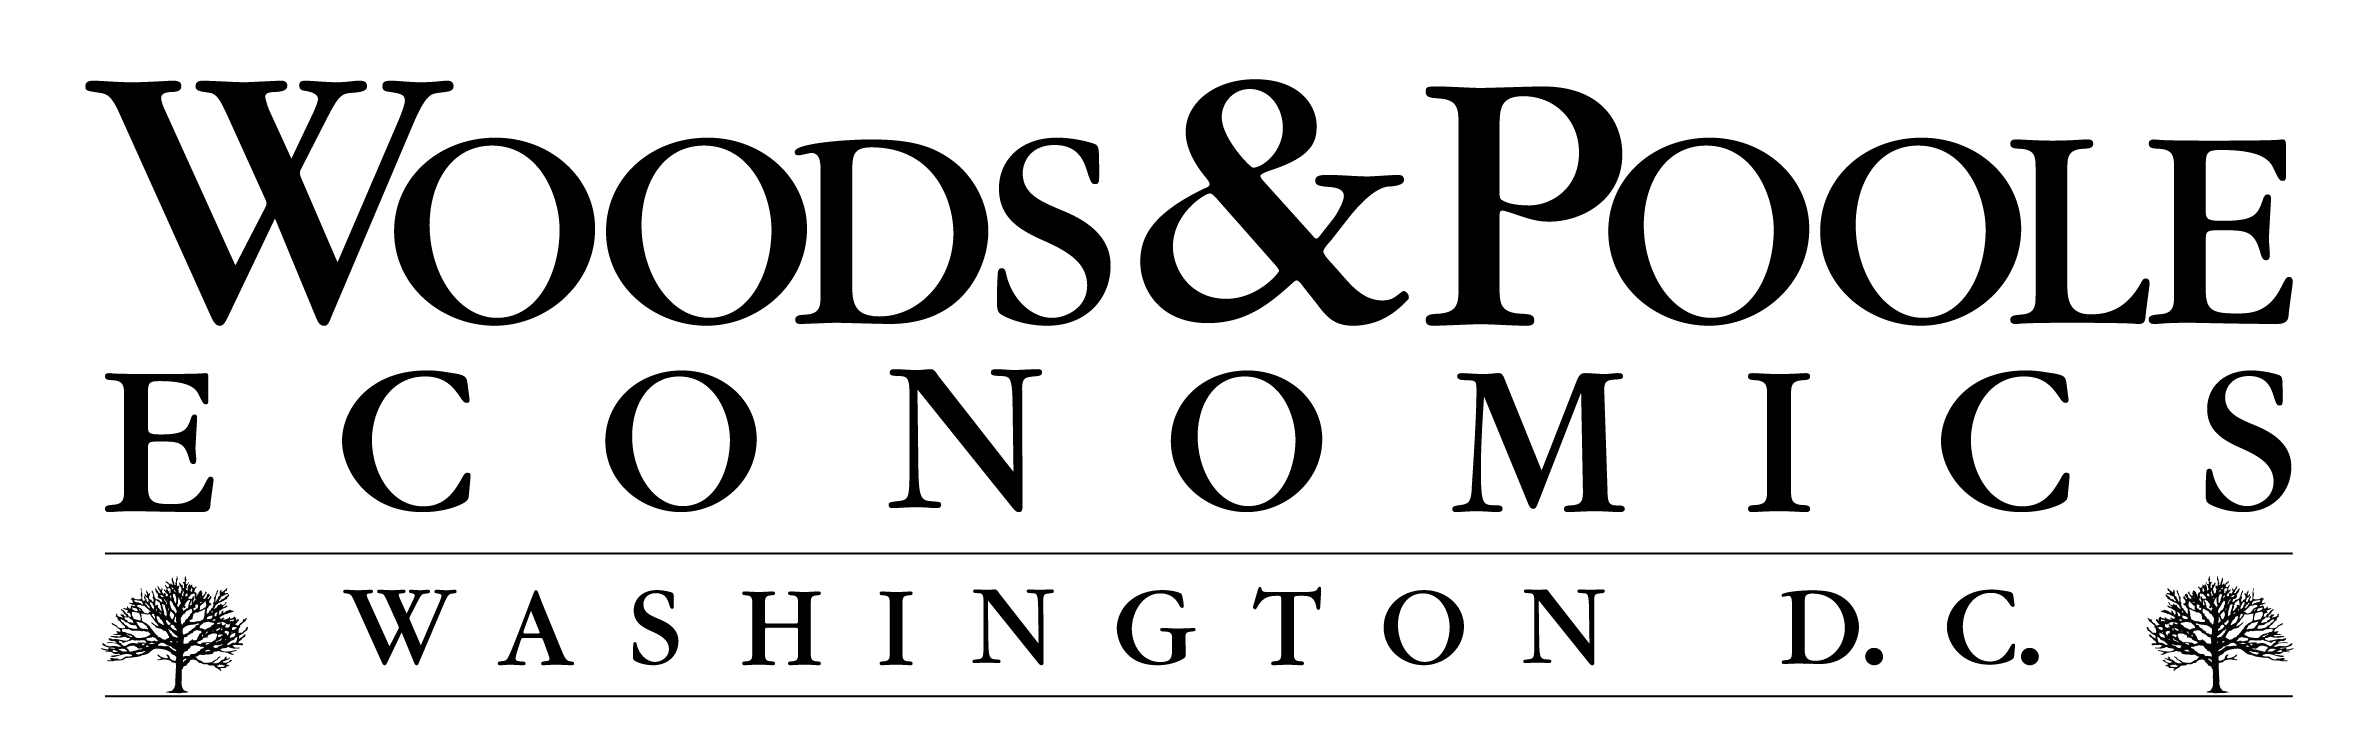 PHILADELPHIA-READING-CAMDEN PA-NJ-DE-MD (FIPS 428) | Woods & Poole Economics, Inc